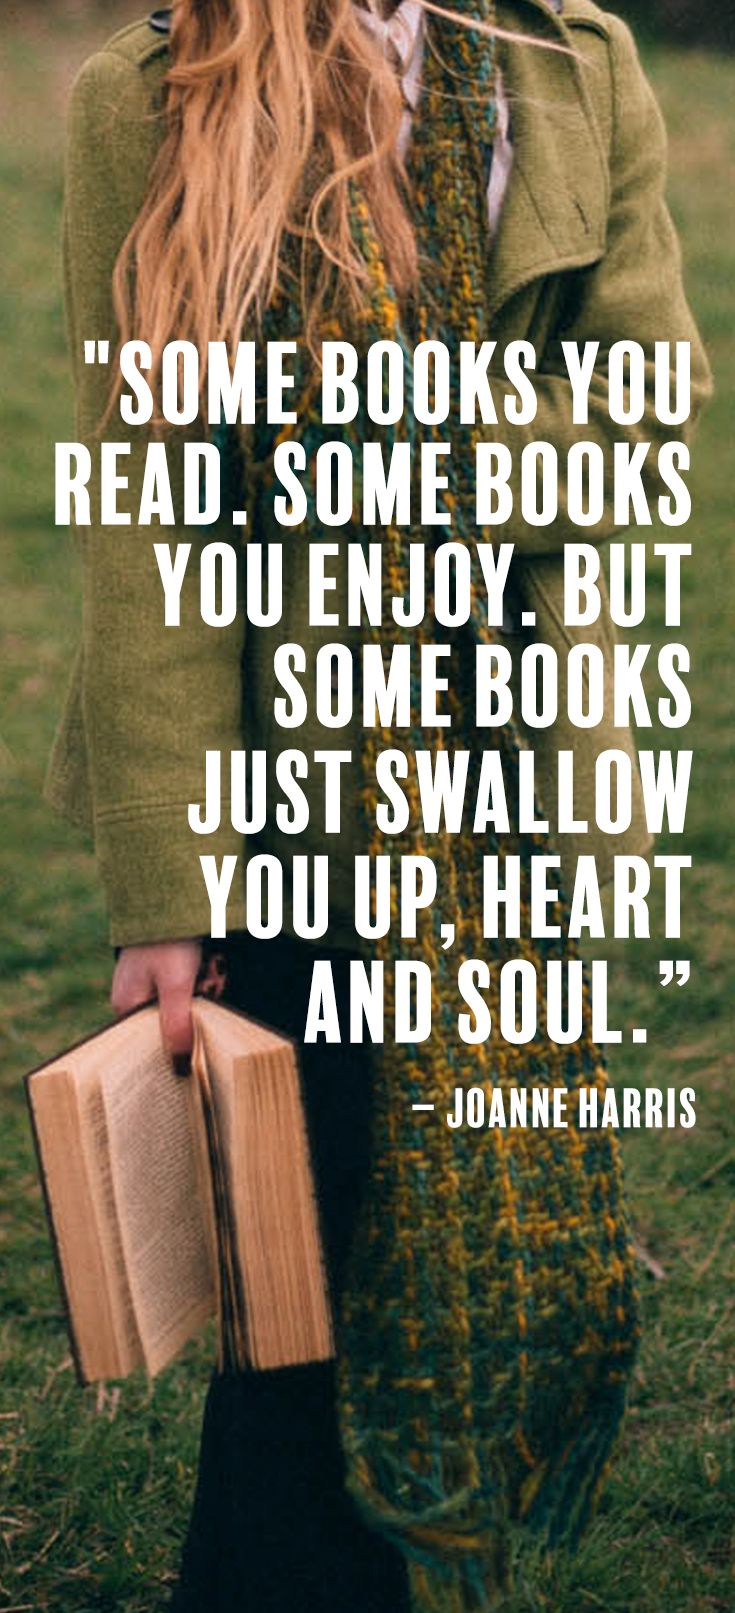 We love this classic book quote. So inspirational, it makes us want to pick up a book ASAP! Some books you read, some books you enjoy, but some books just swallow you up, heart and soul